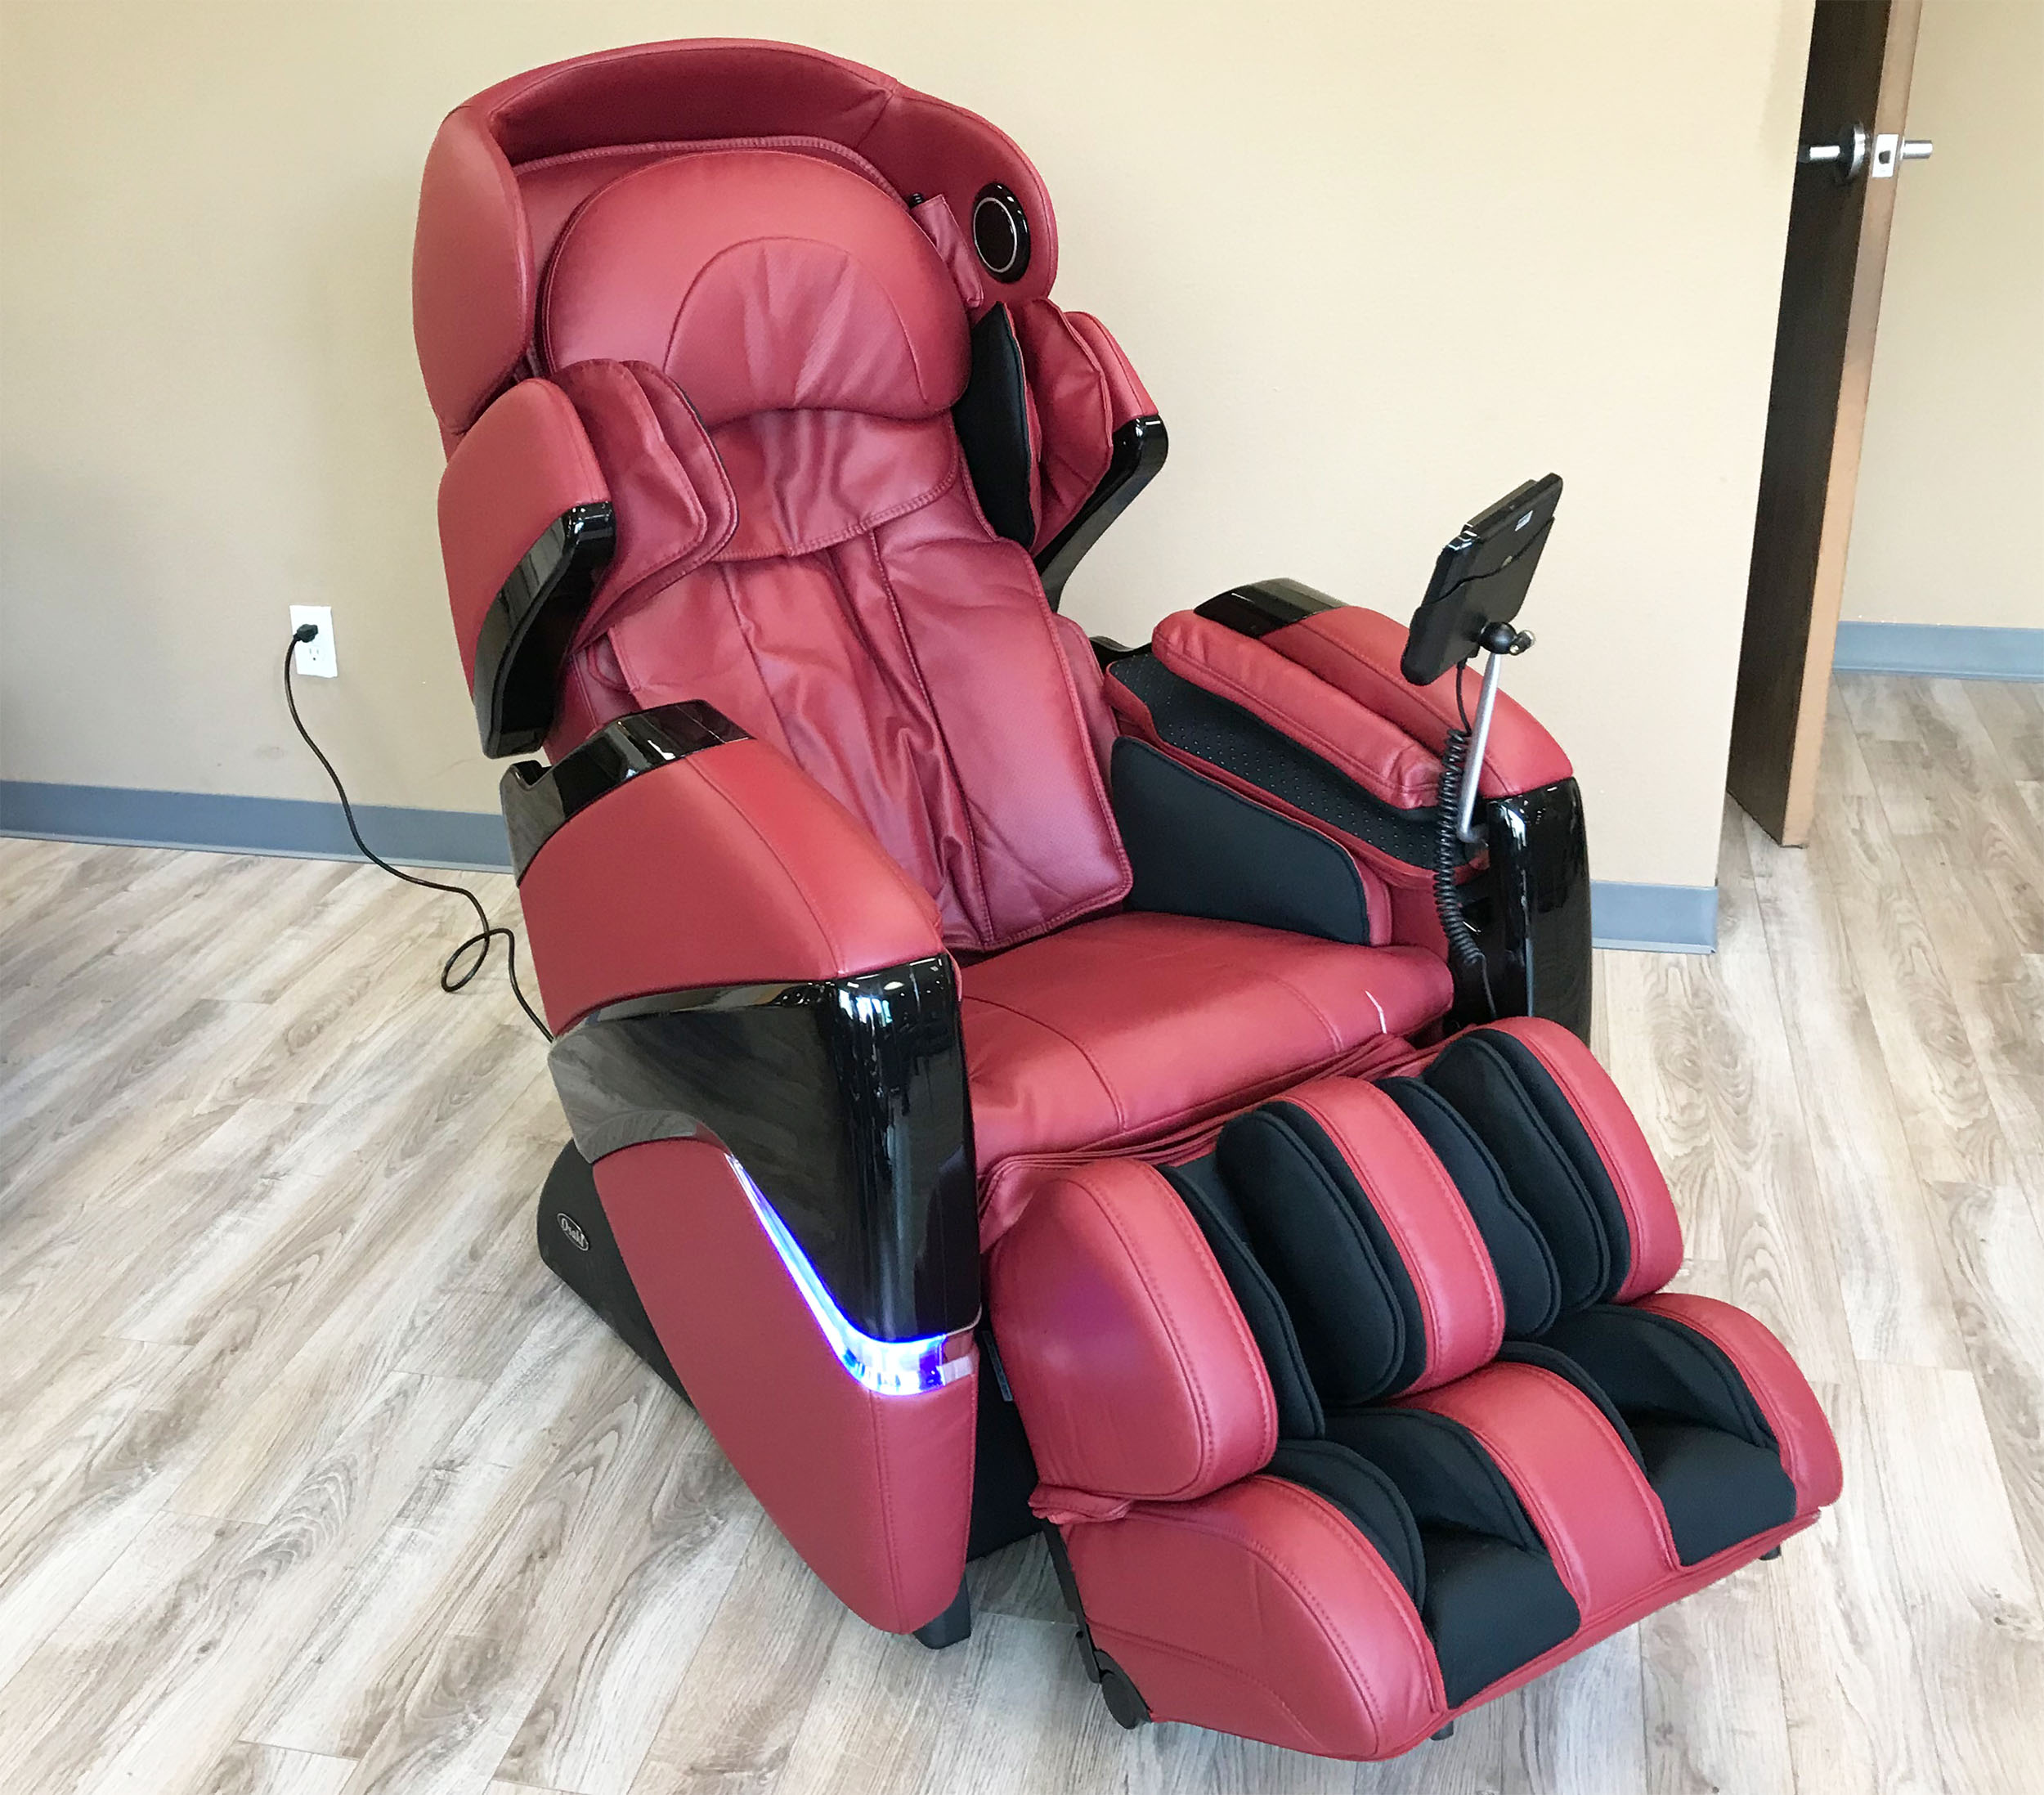 osaki os 3d cyber pro massage chair and sofa covers for sale zero gravity recliner